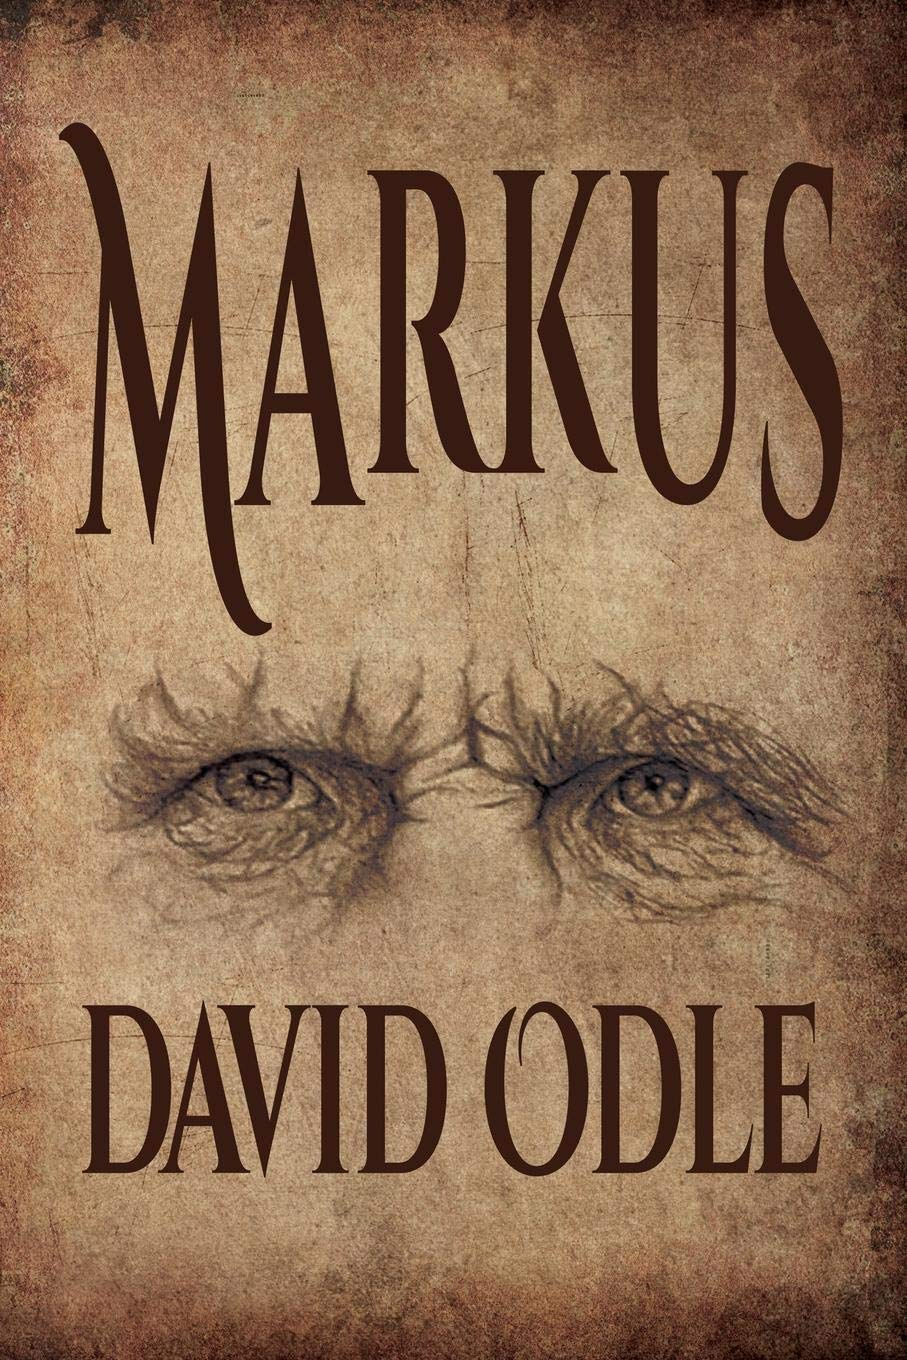 Image result for markus by david odle